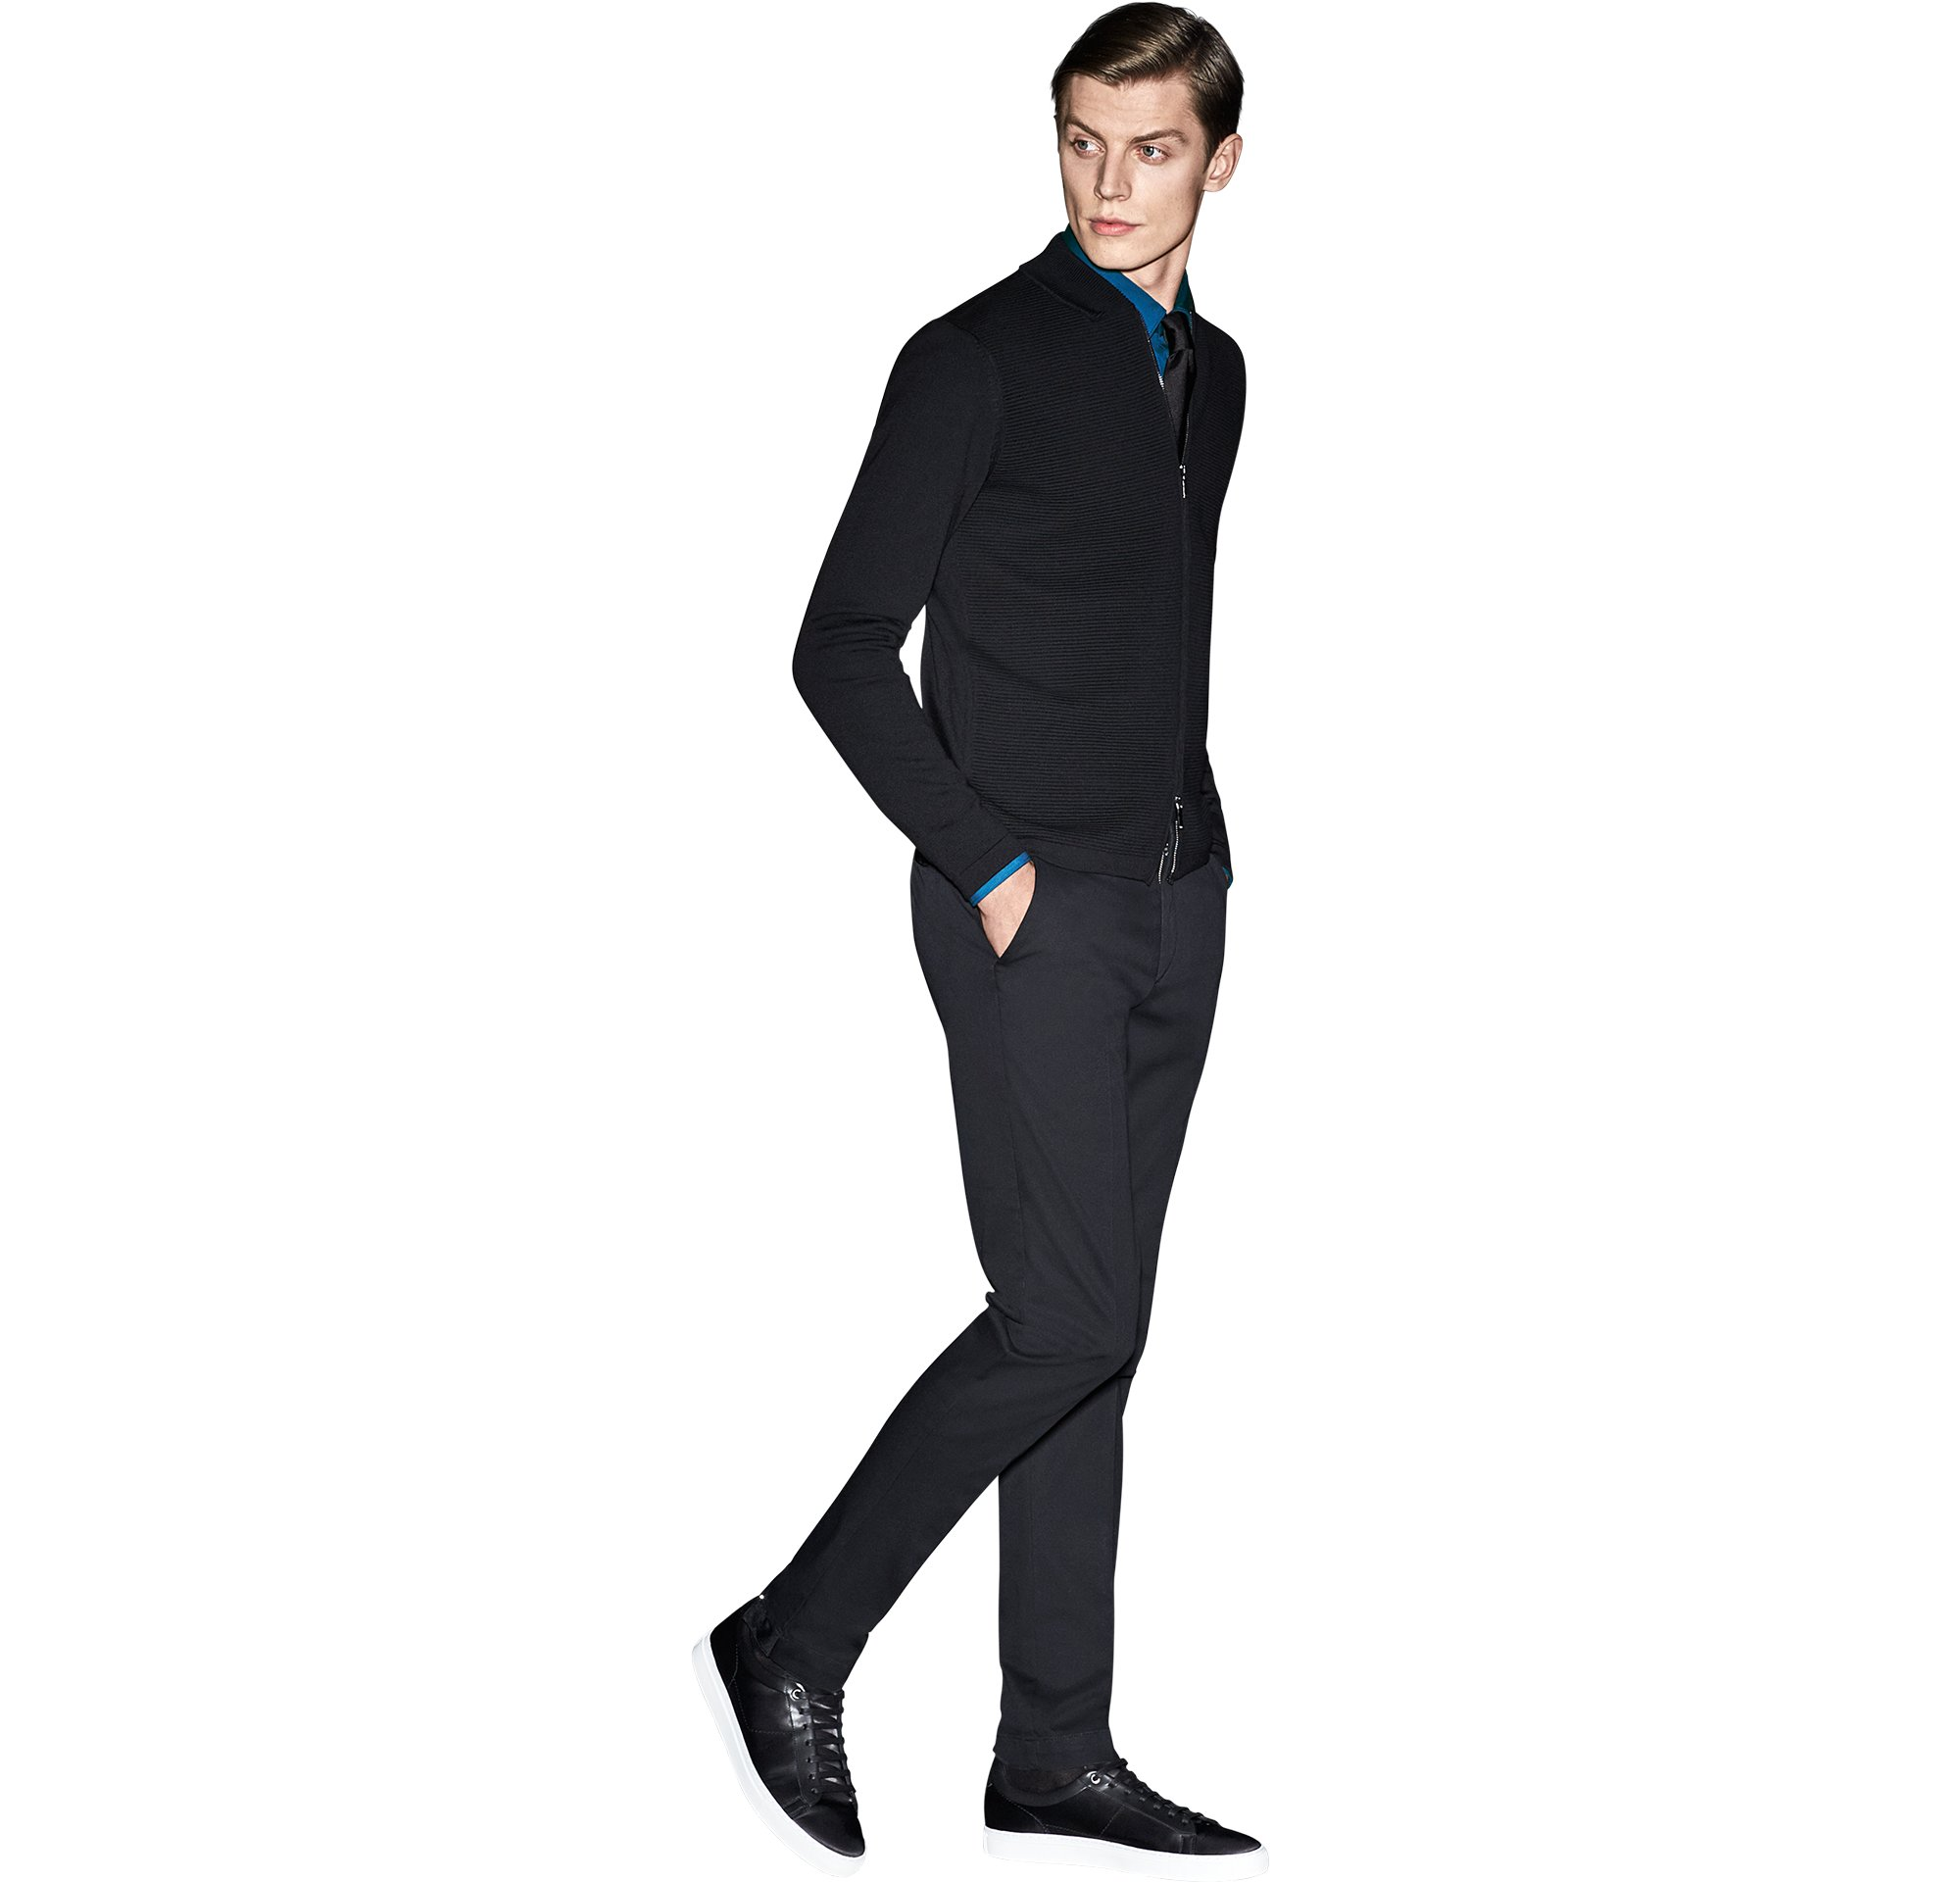 Black knitwear over blue shirt and black trousers with black shoes by BOSS